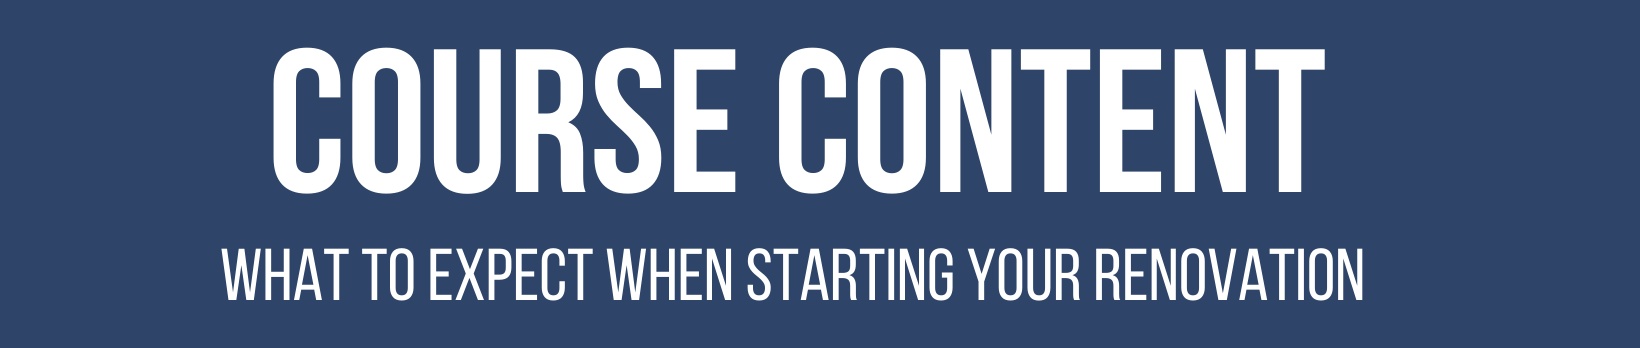 Course Content: What to expect when starting your renovation